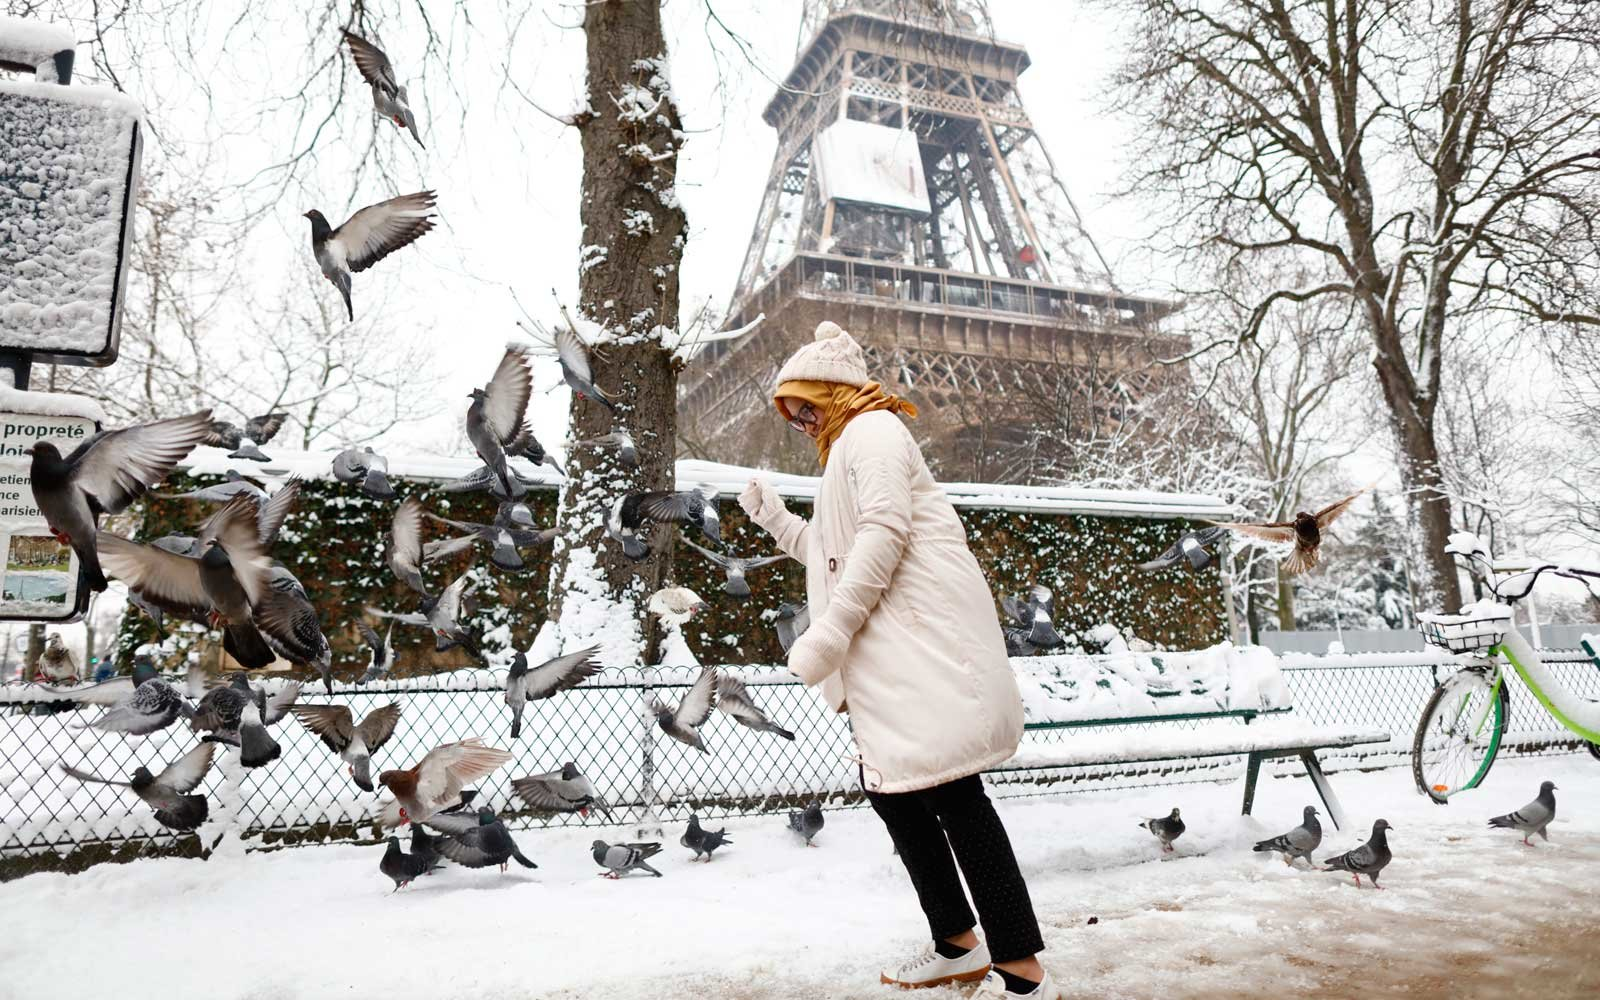 People walk through the snow in Paris, France on February 7, 2018 following heavy snowfall.